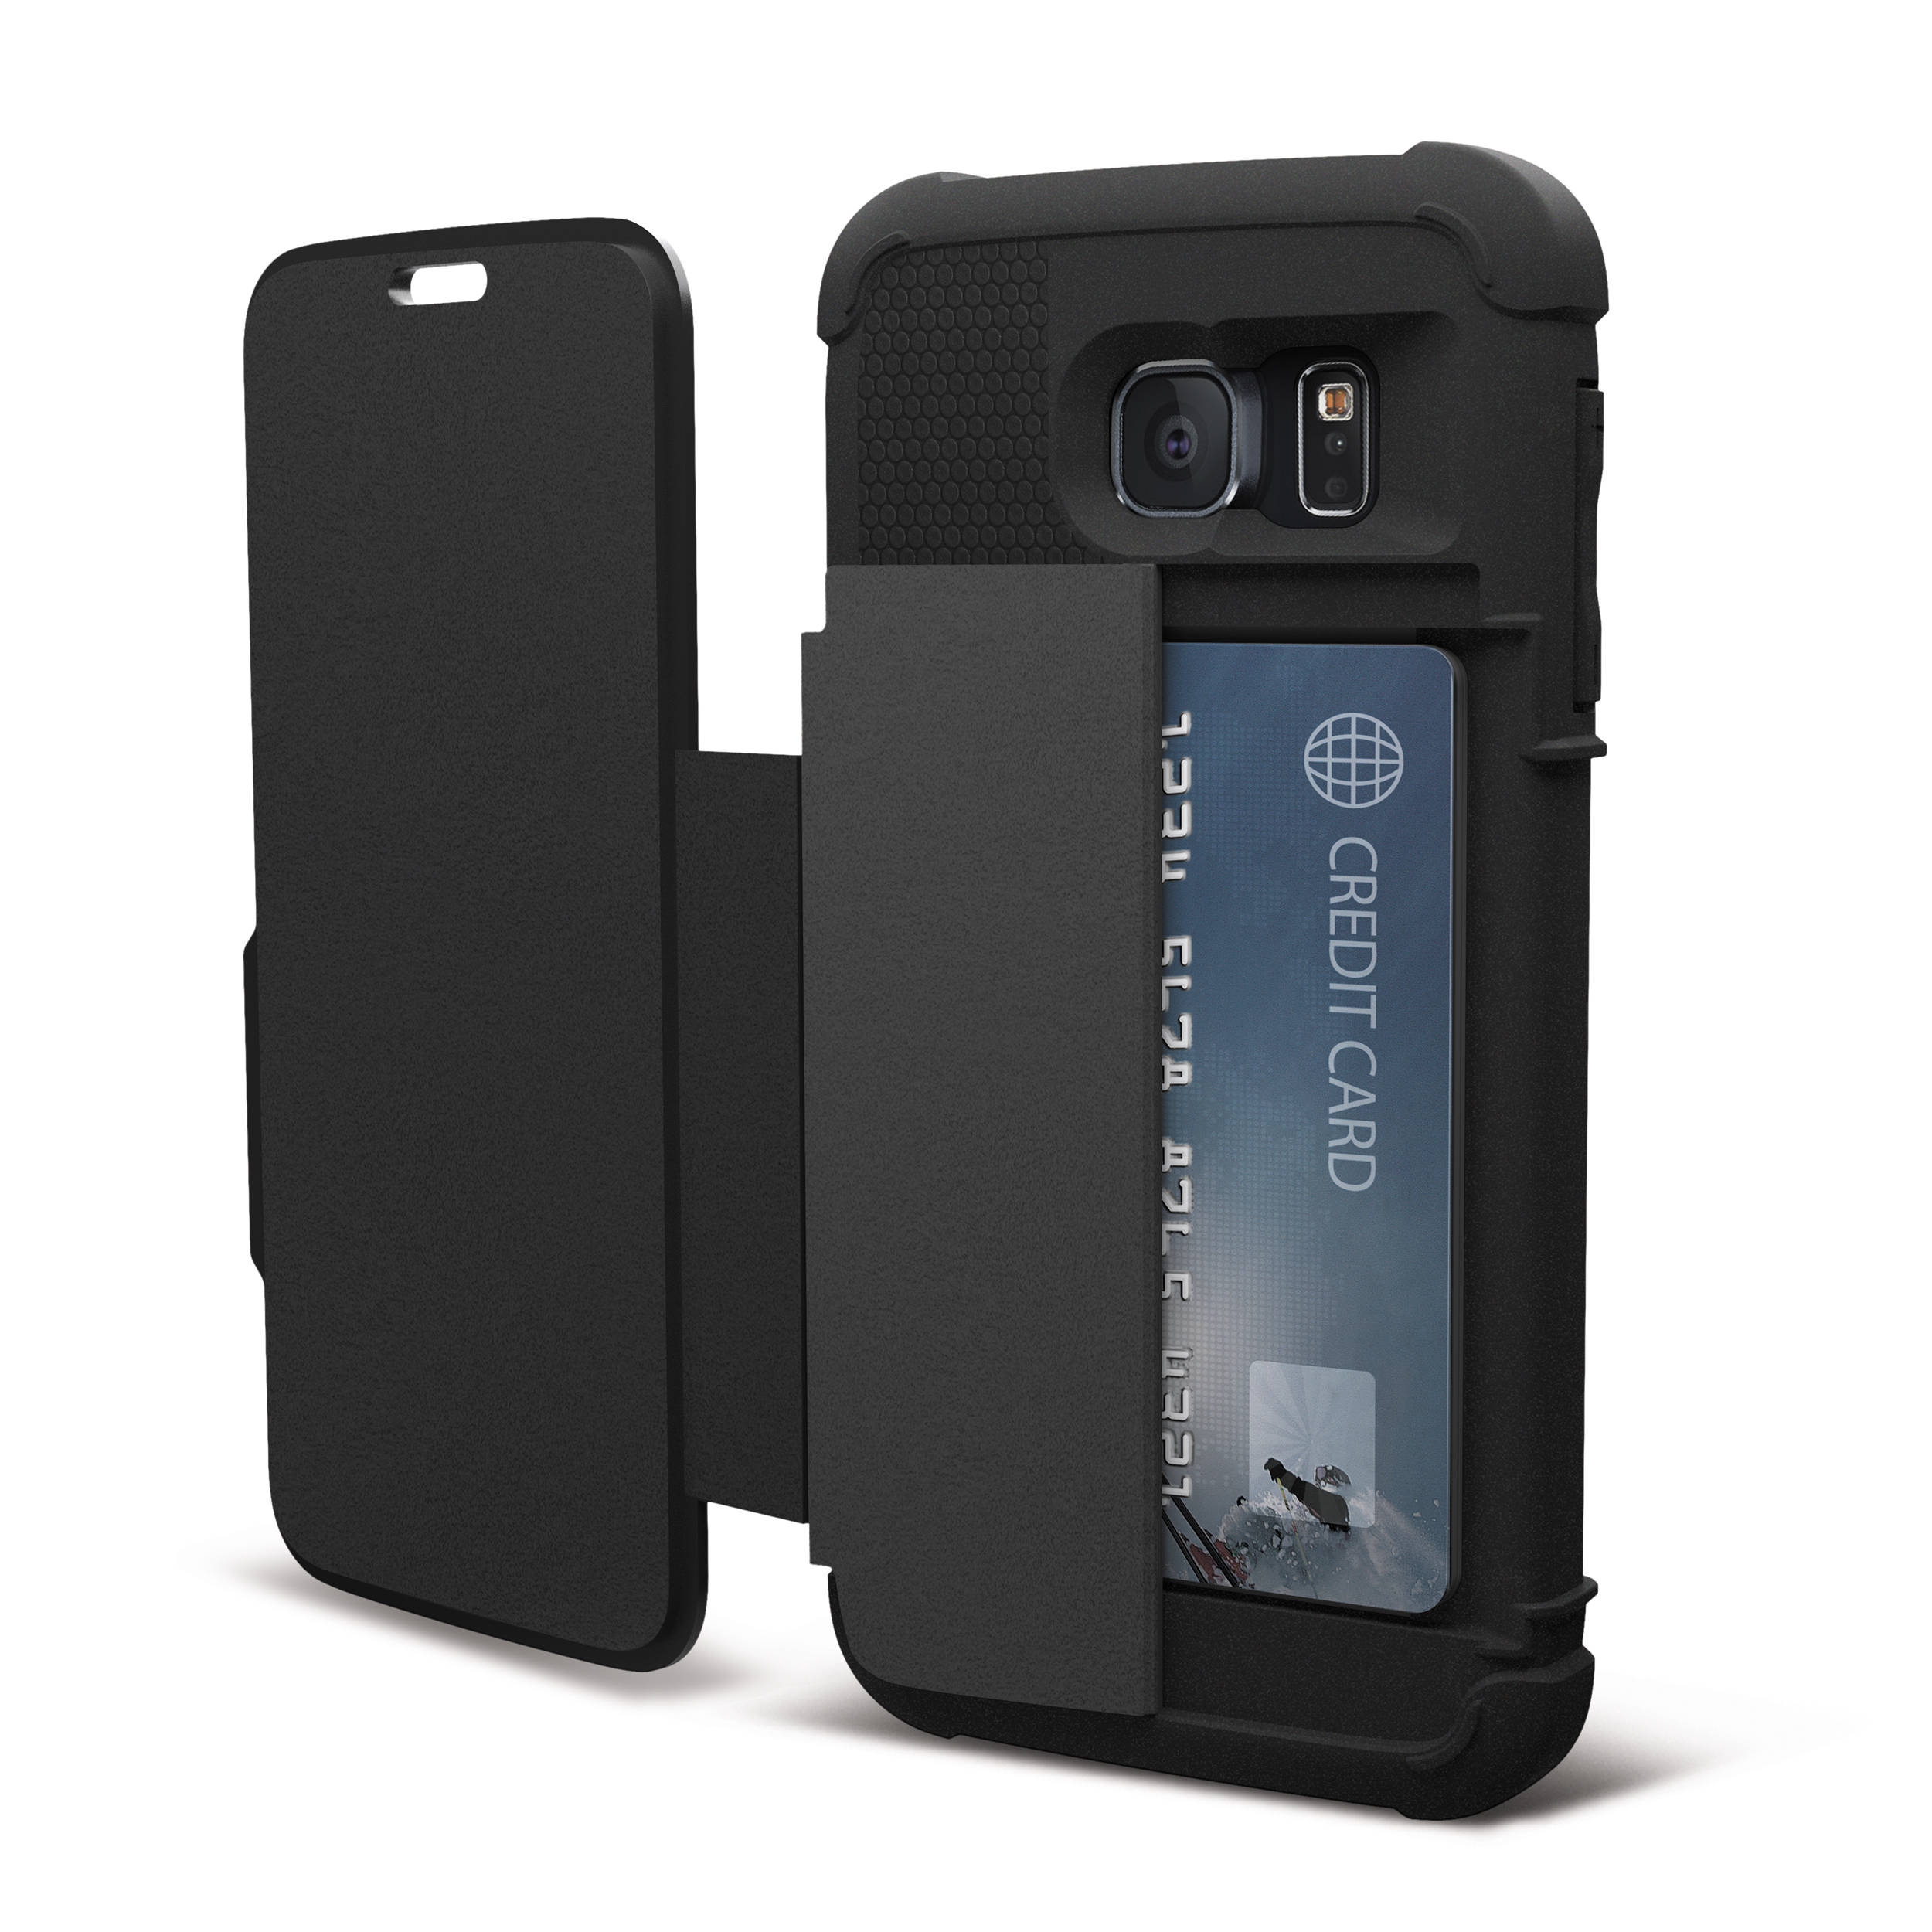 Case Design phone case that holds credit cards : UAG Folio Case for Galaxy S6 (Scout) UAG-GLXS6F-BLK Bu0026H Photo